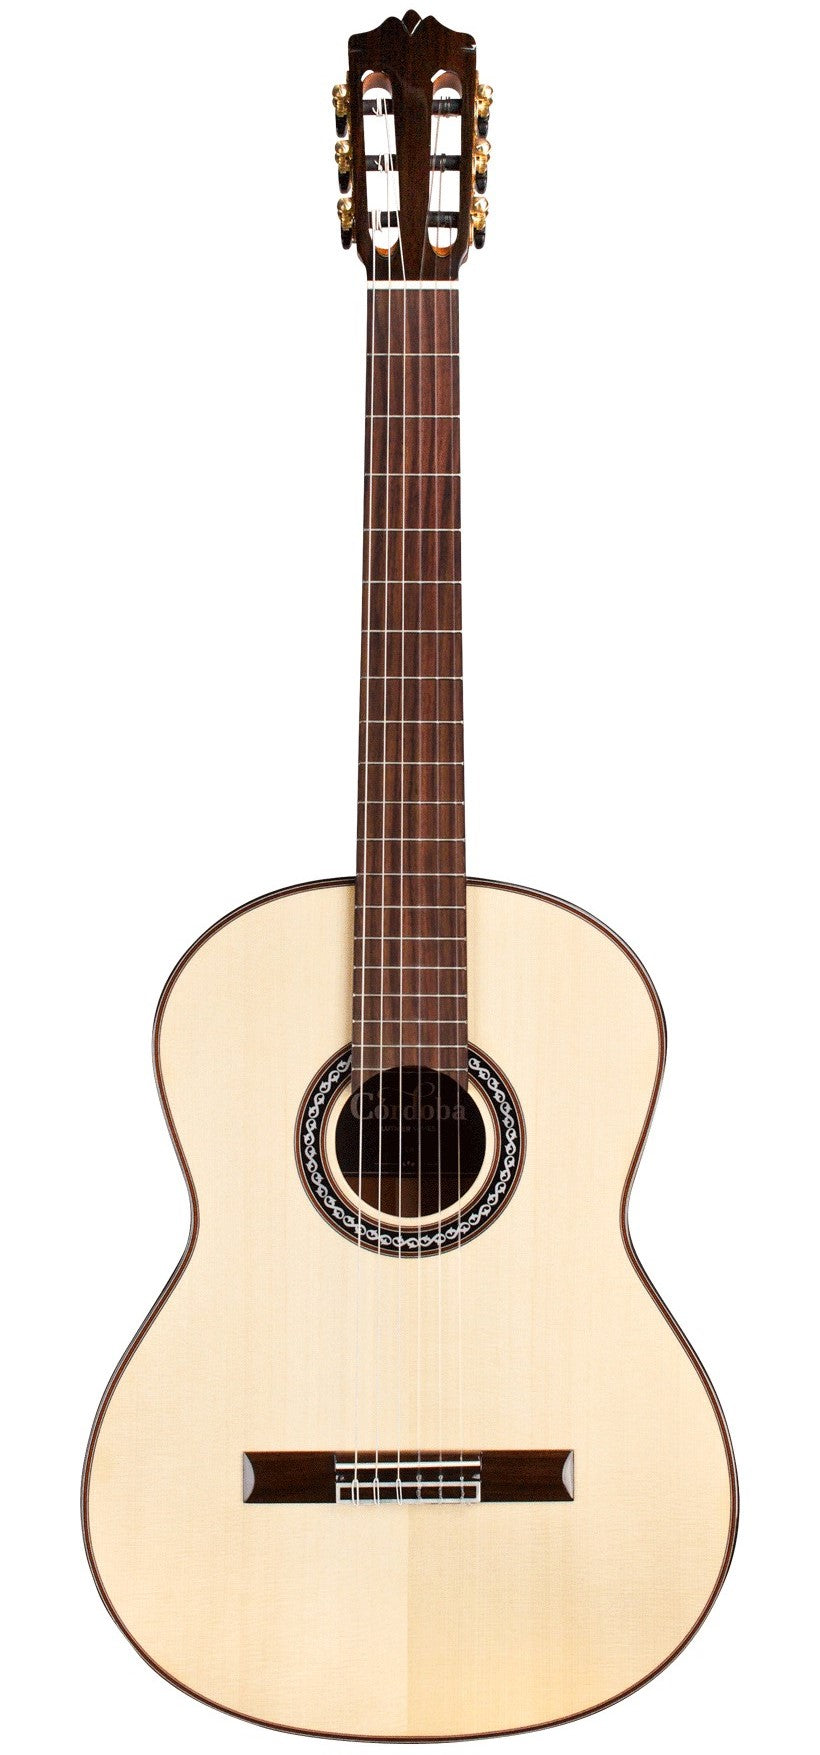 Cordoba C9 SP All Solid Spruce/Mahogany Nylon String Acoustic Guitar